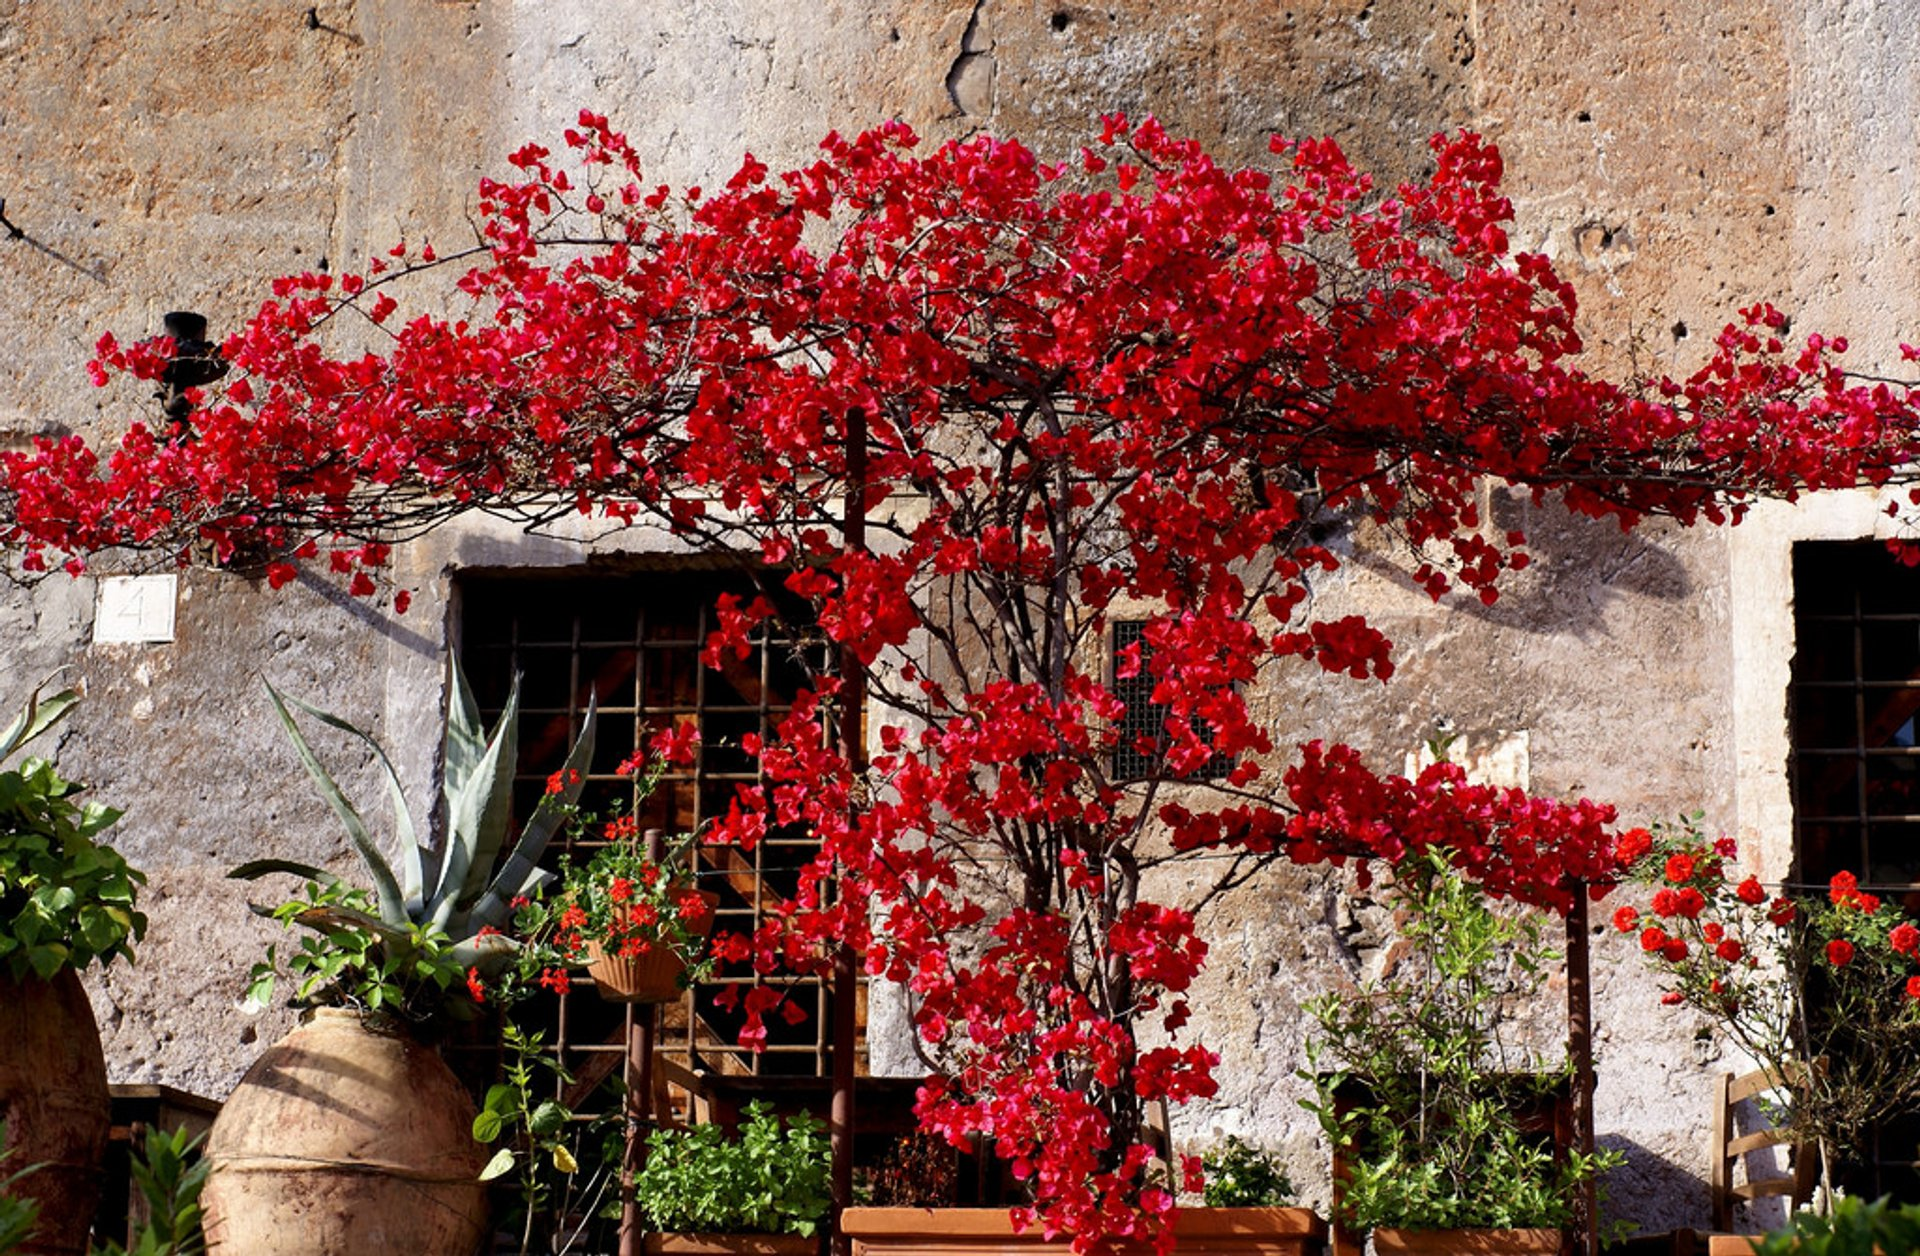 Best time to see Bougainvillea Bloom in Rome 2019